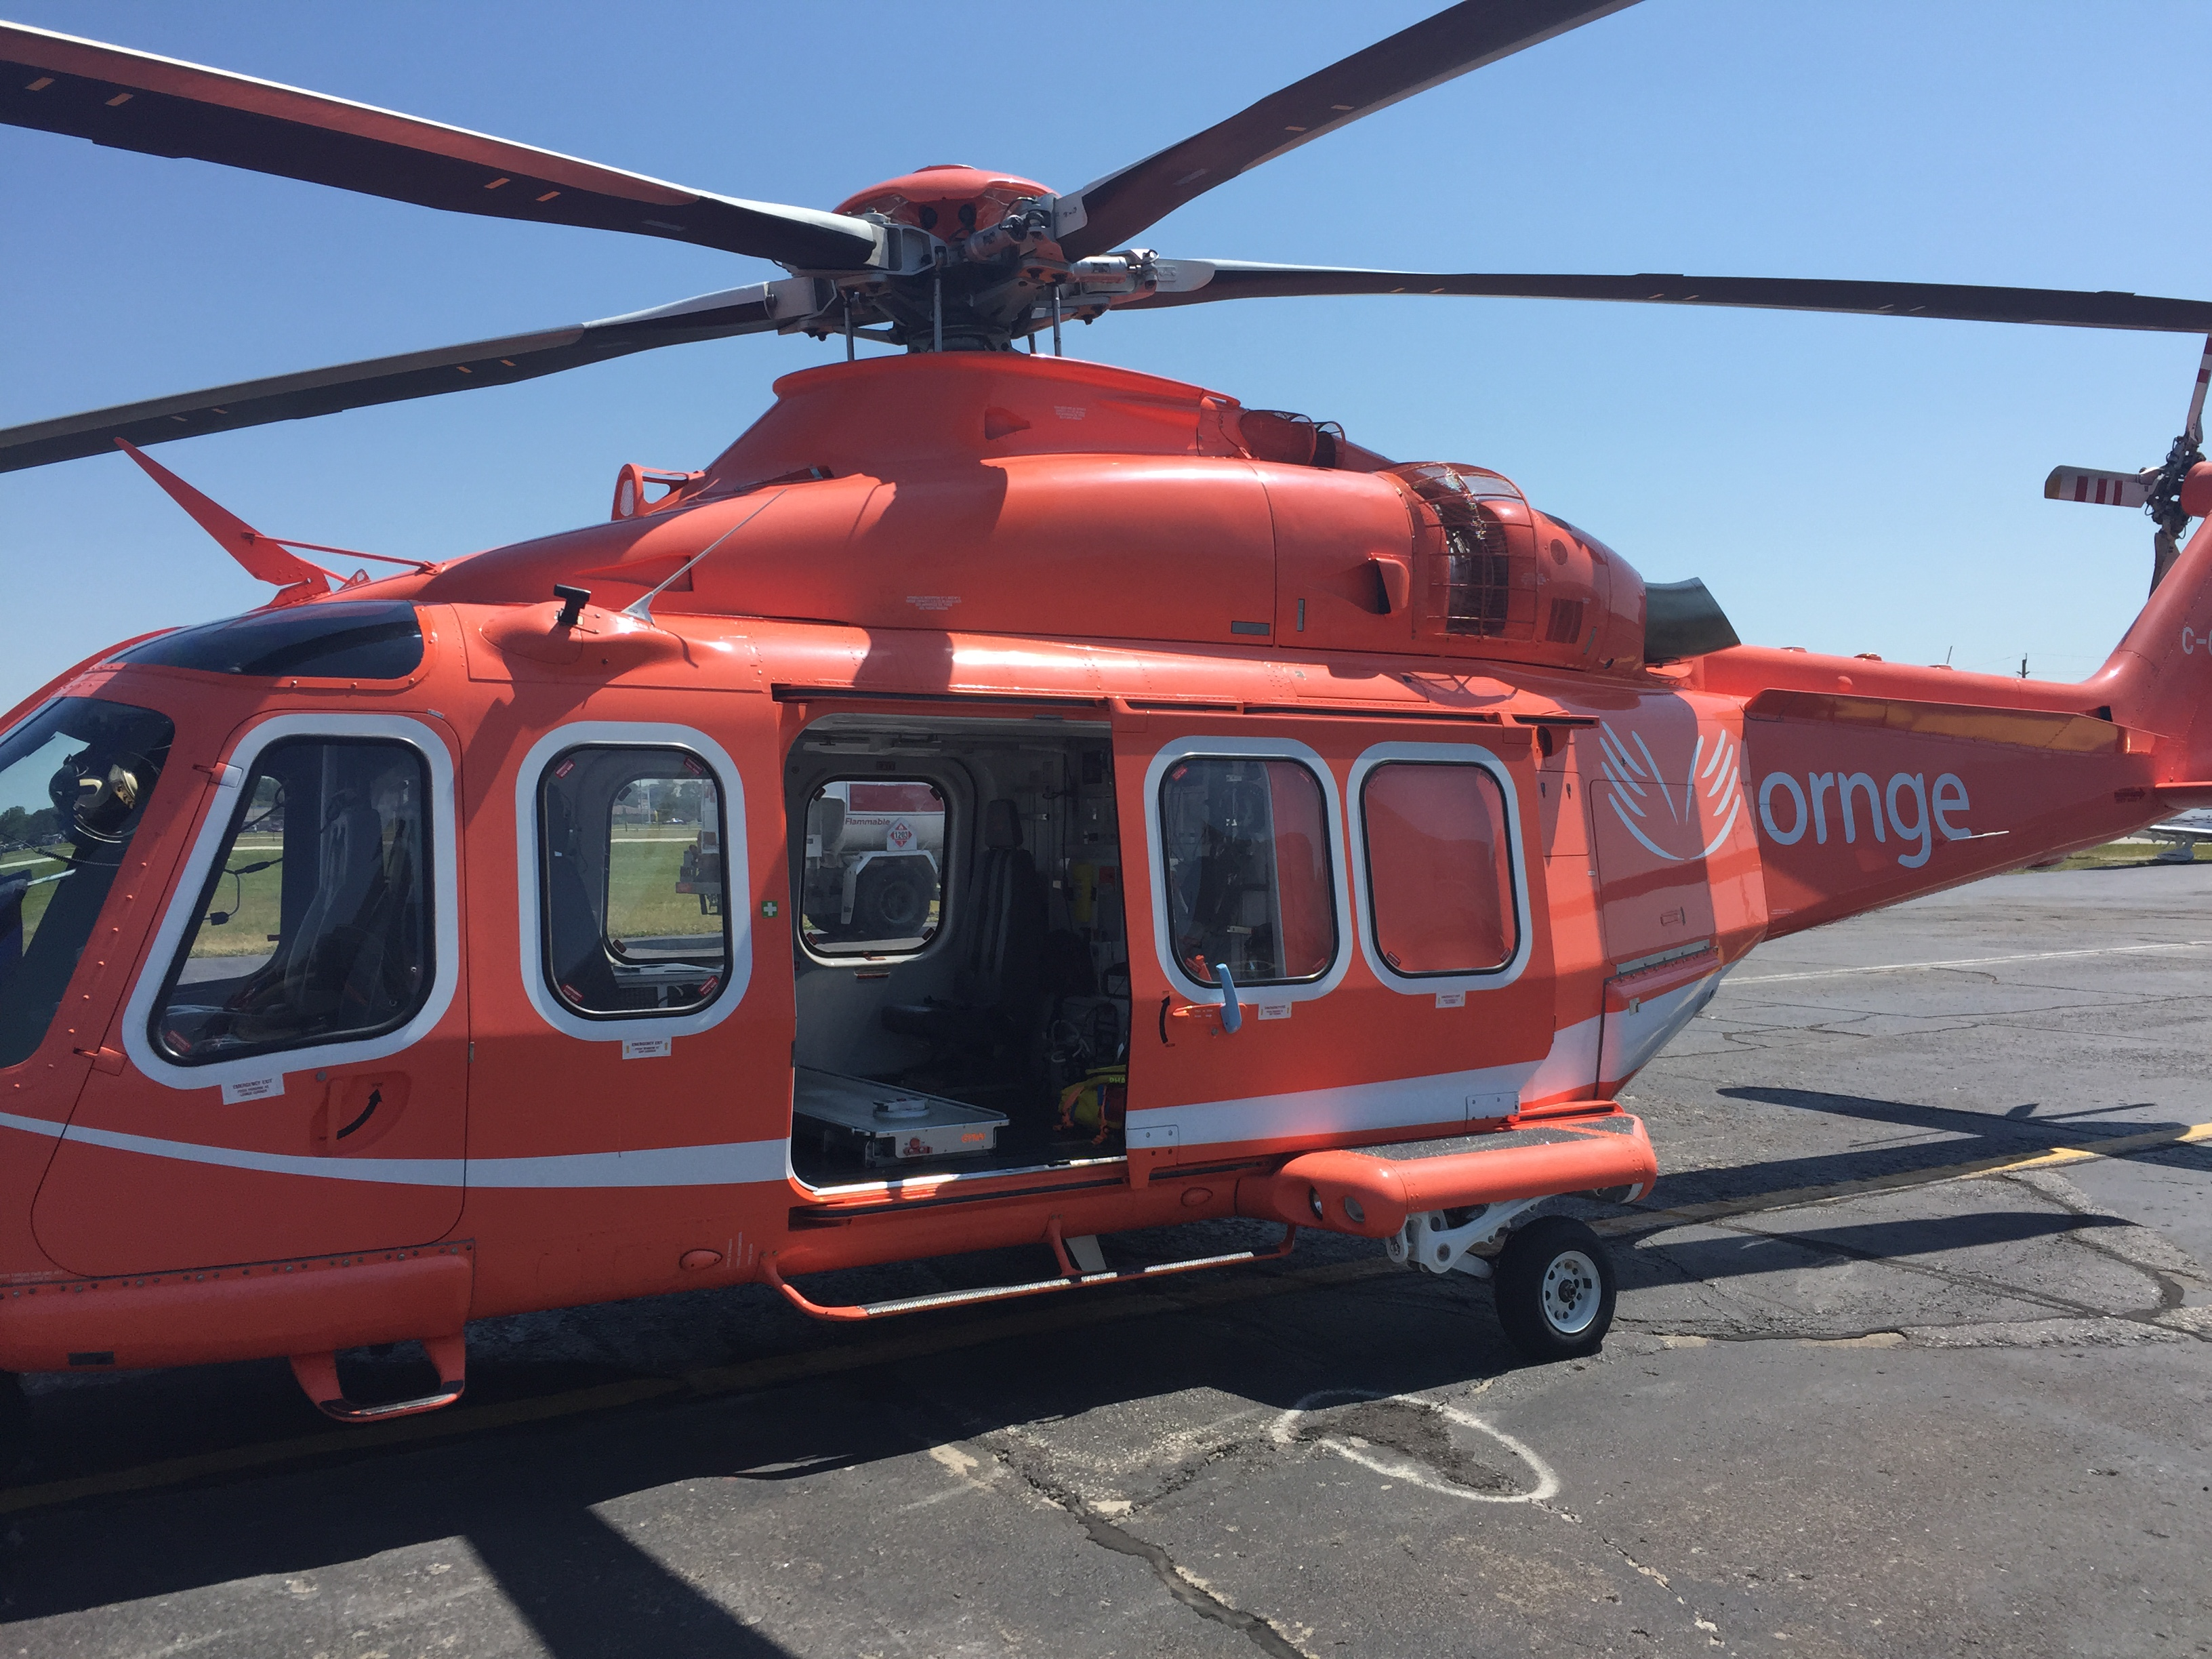 Ornge Air Ambulance (Photo by Mike James)